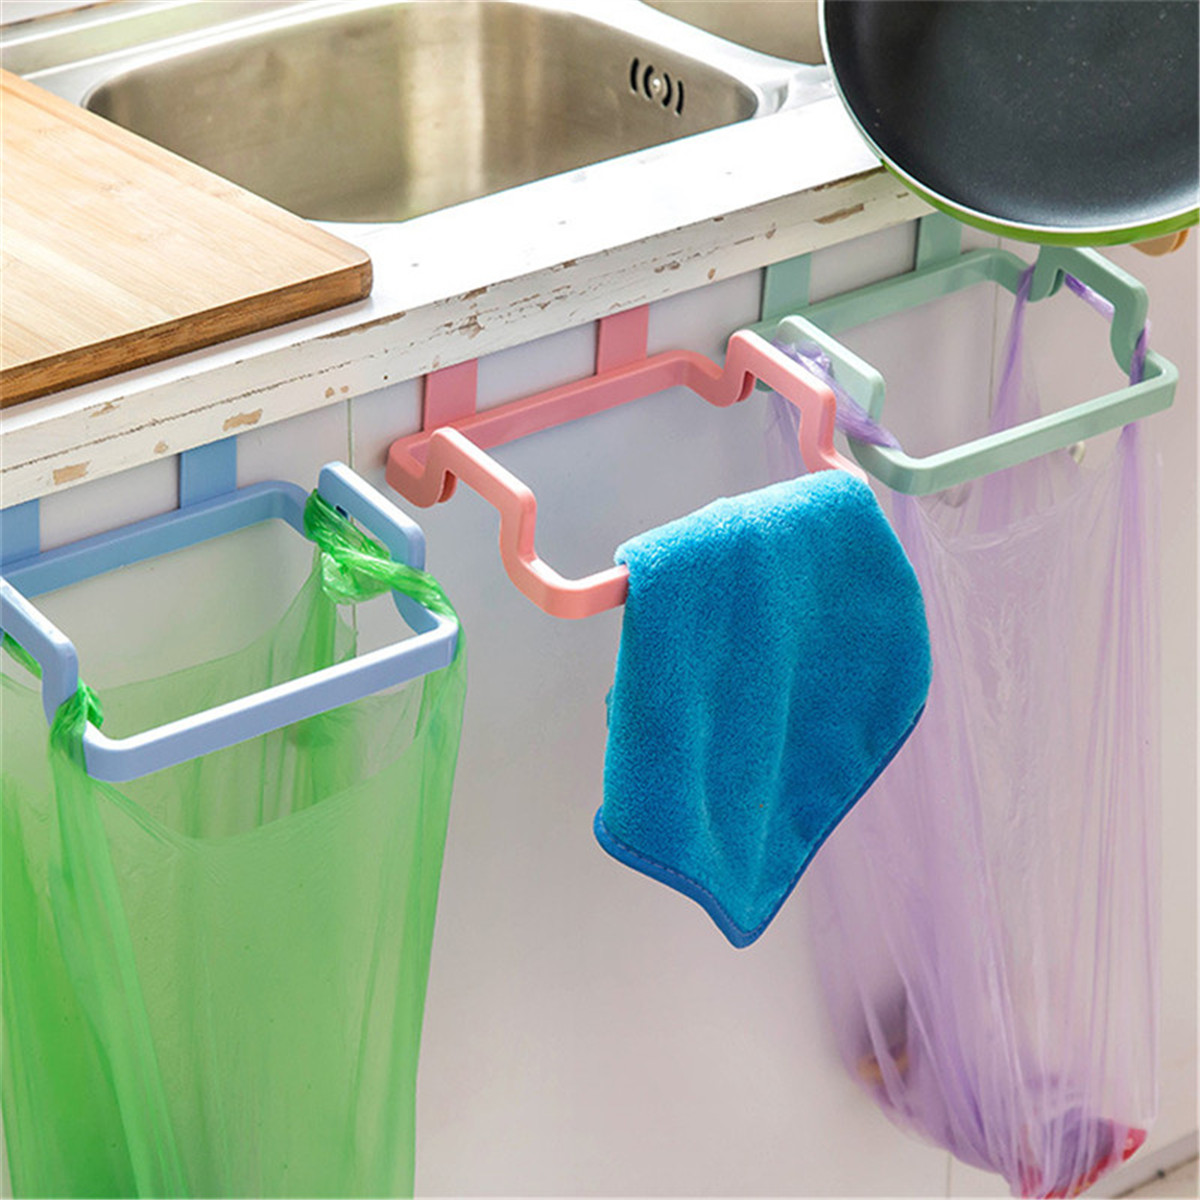 Plastic Hanging Garbage Bag Holder Cabinets Cloth Rack Towel Storage ...